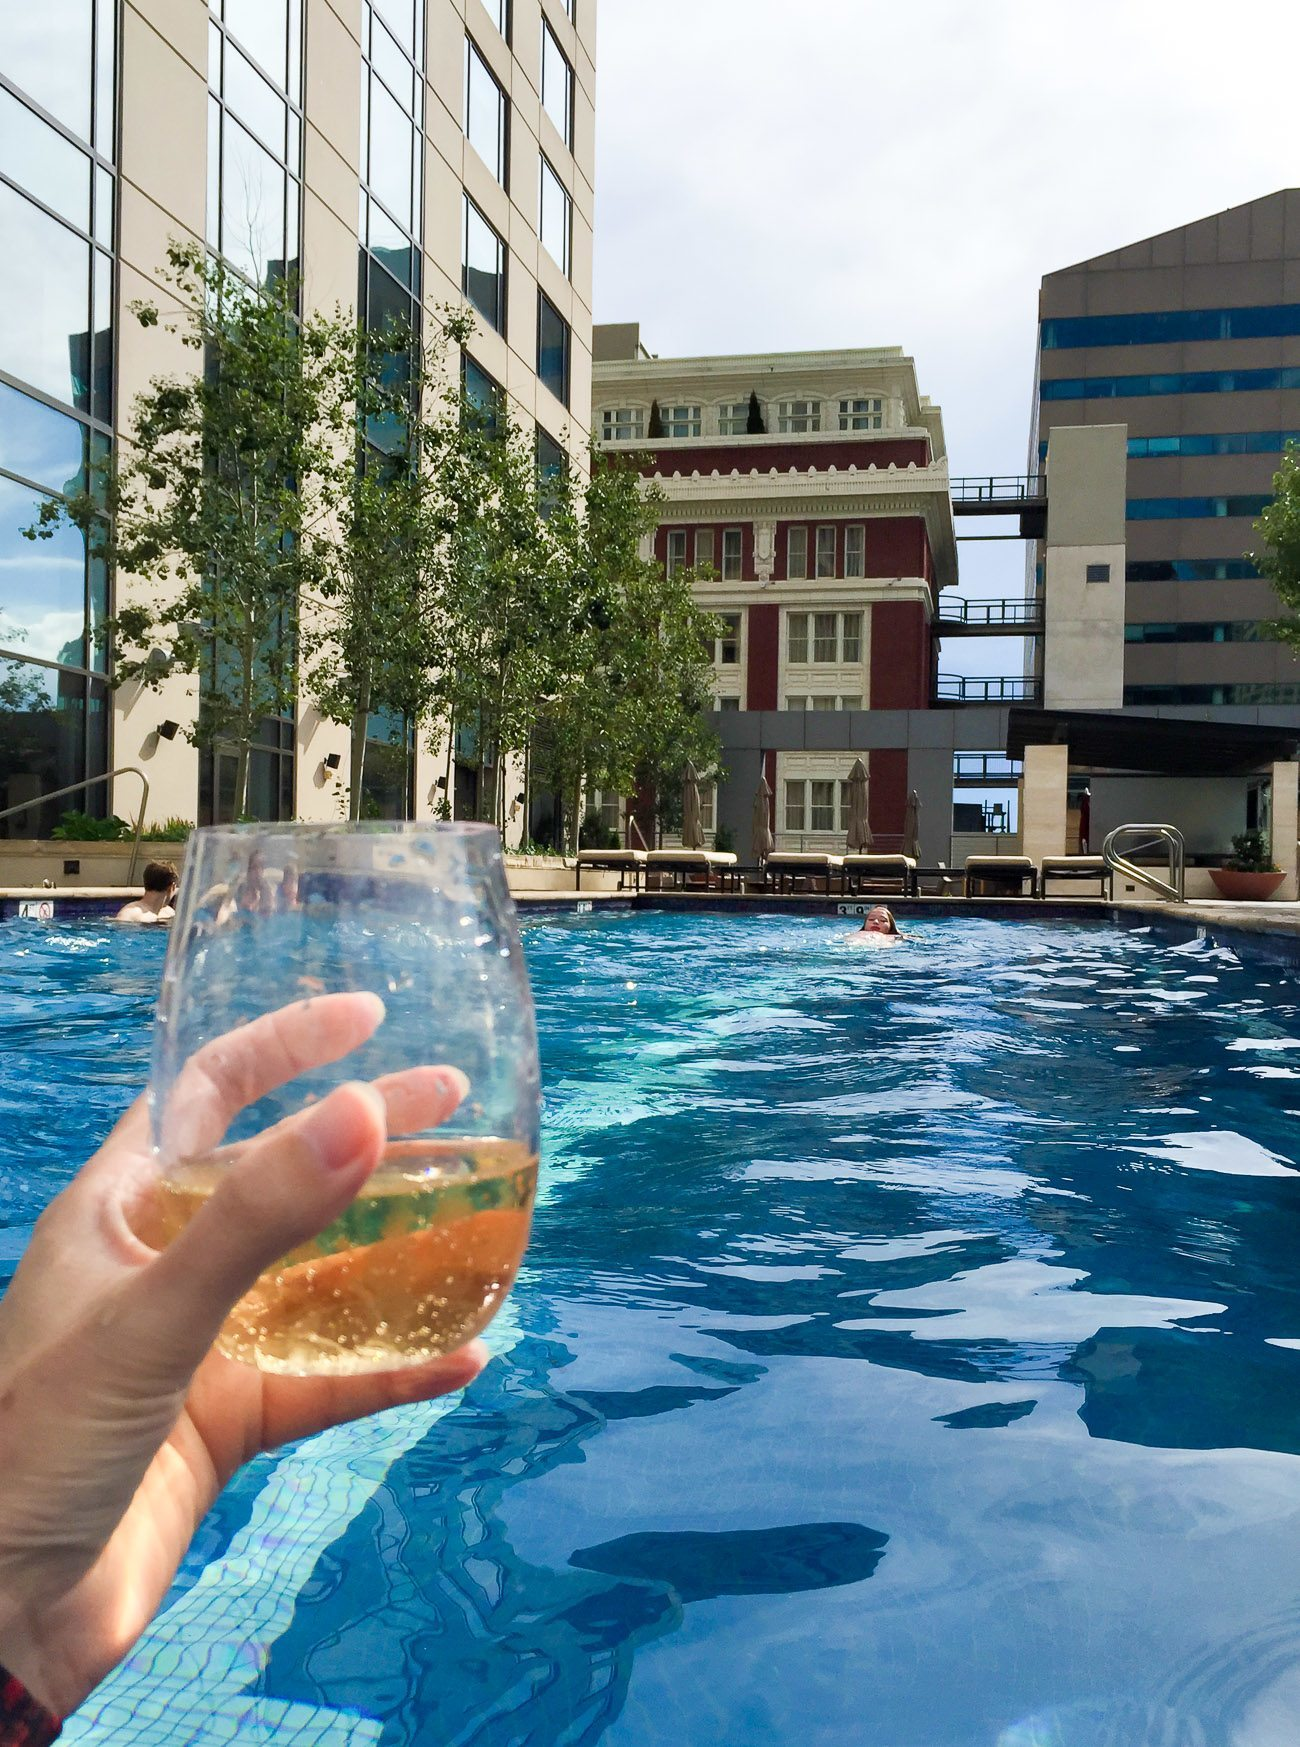 I drank a glass of Veuve Cliquot in the Four Seasons Hotel Denver pool